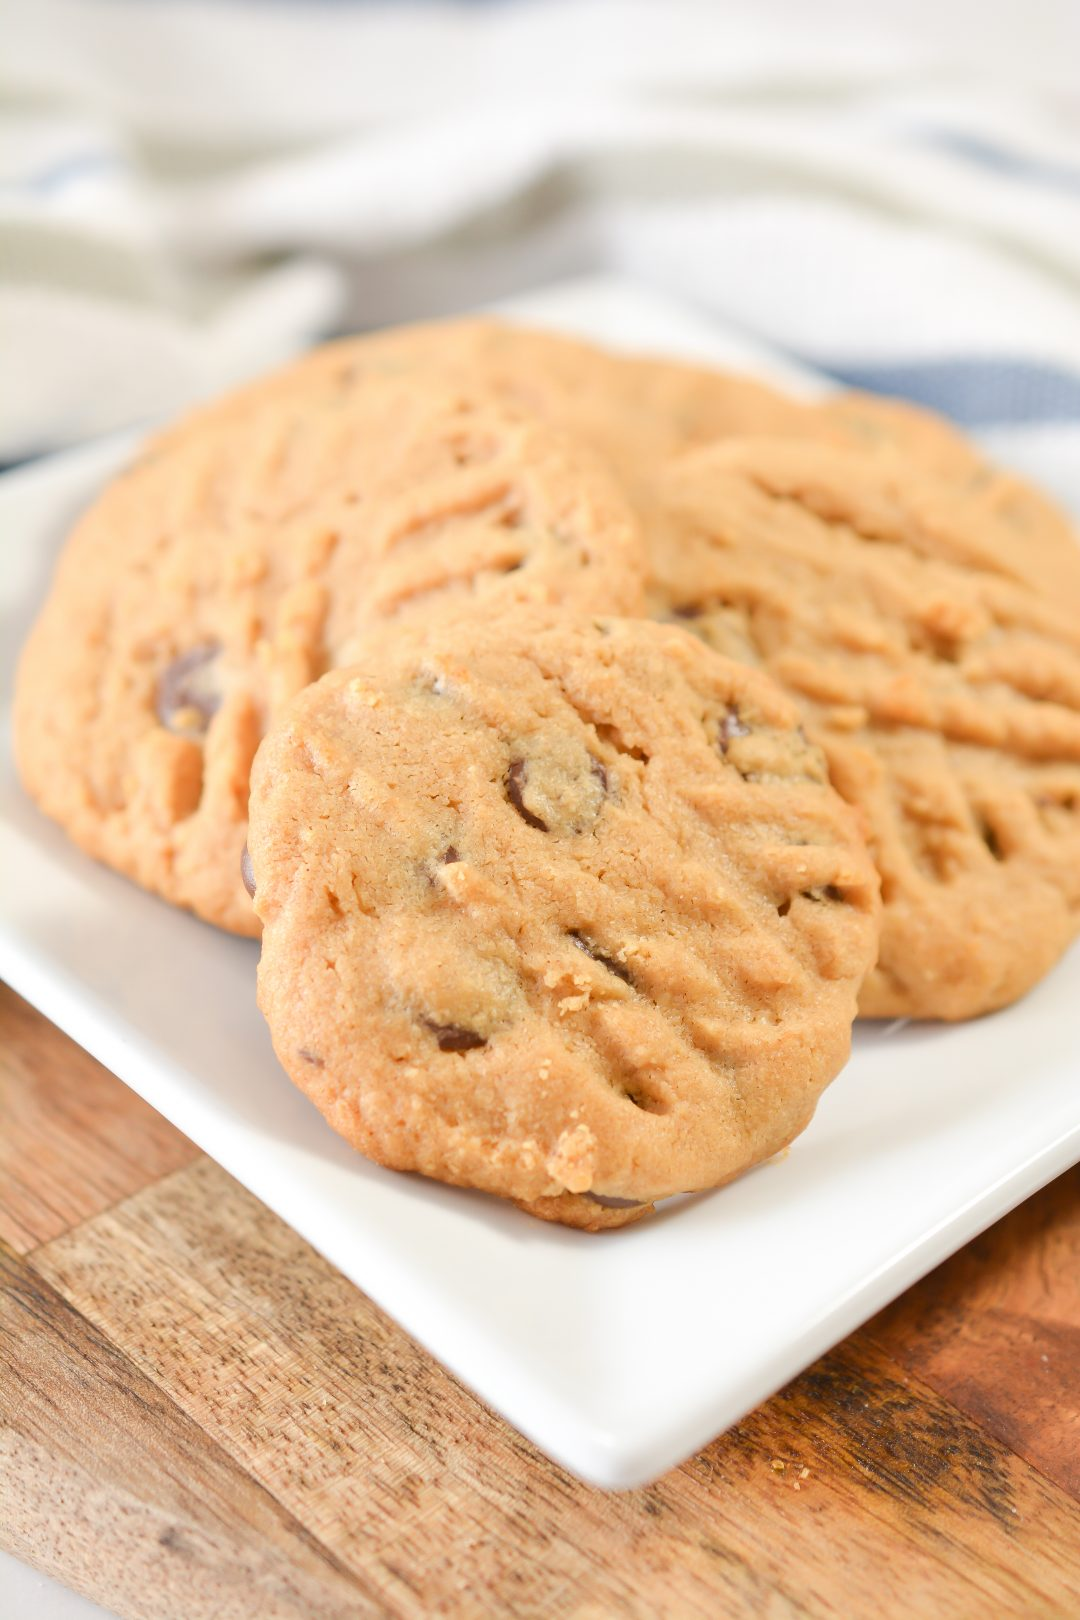 Easy Peanut Butter Chocolate Chip Cookies Recipe